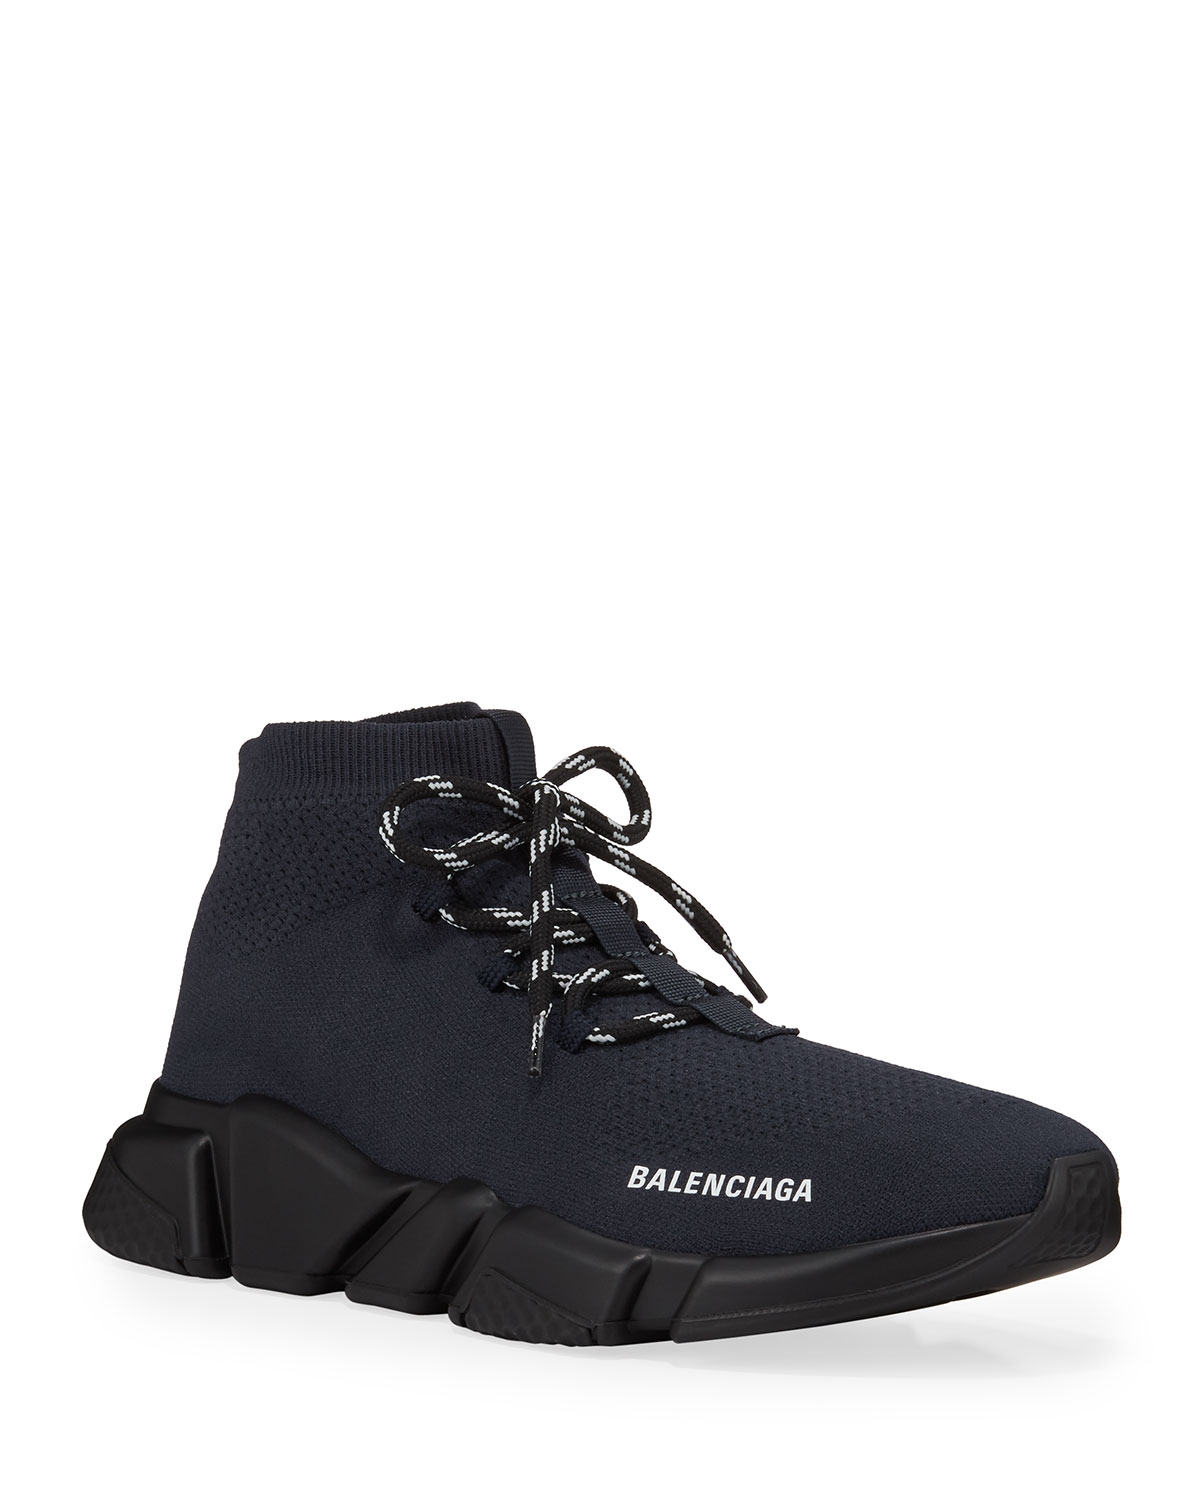 Men's Speed Lace Up Knit Sneaker by Balenciaga